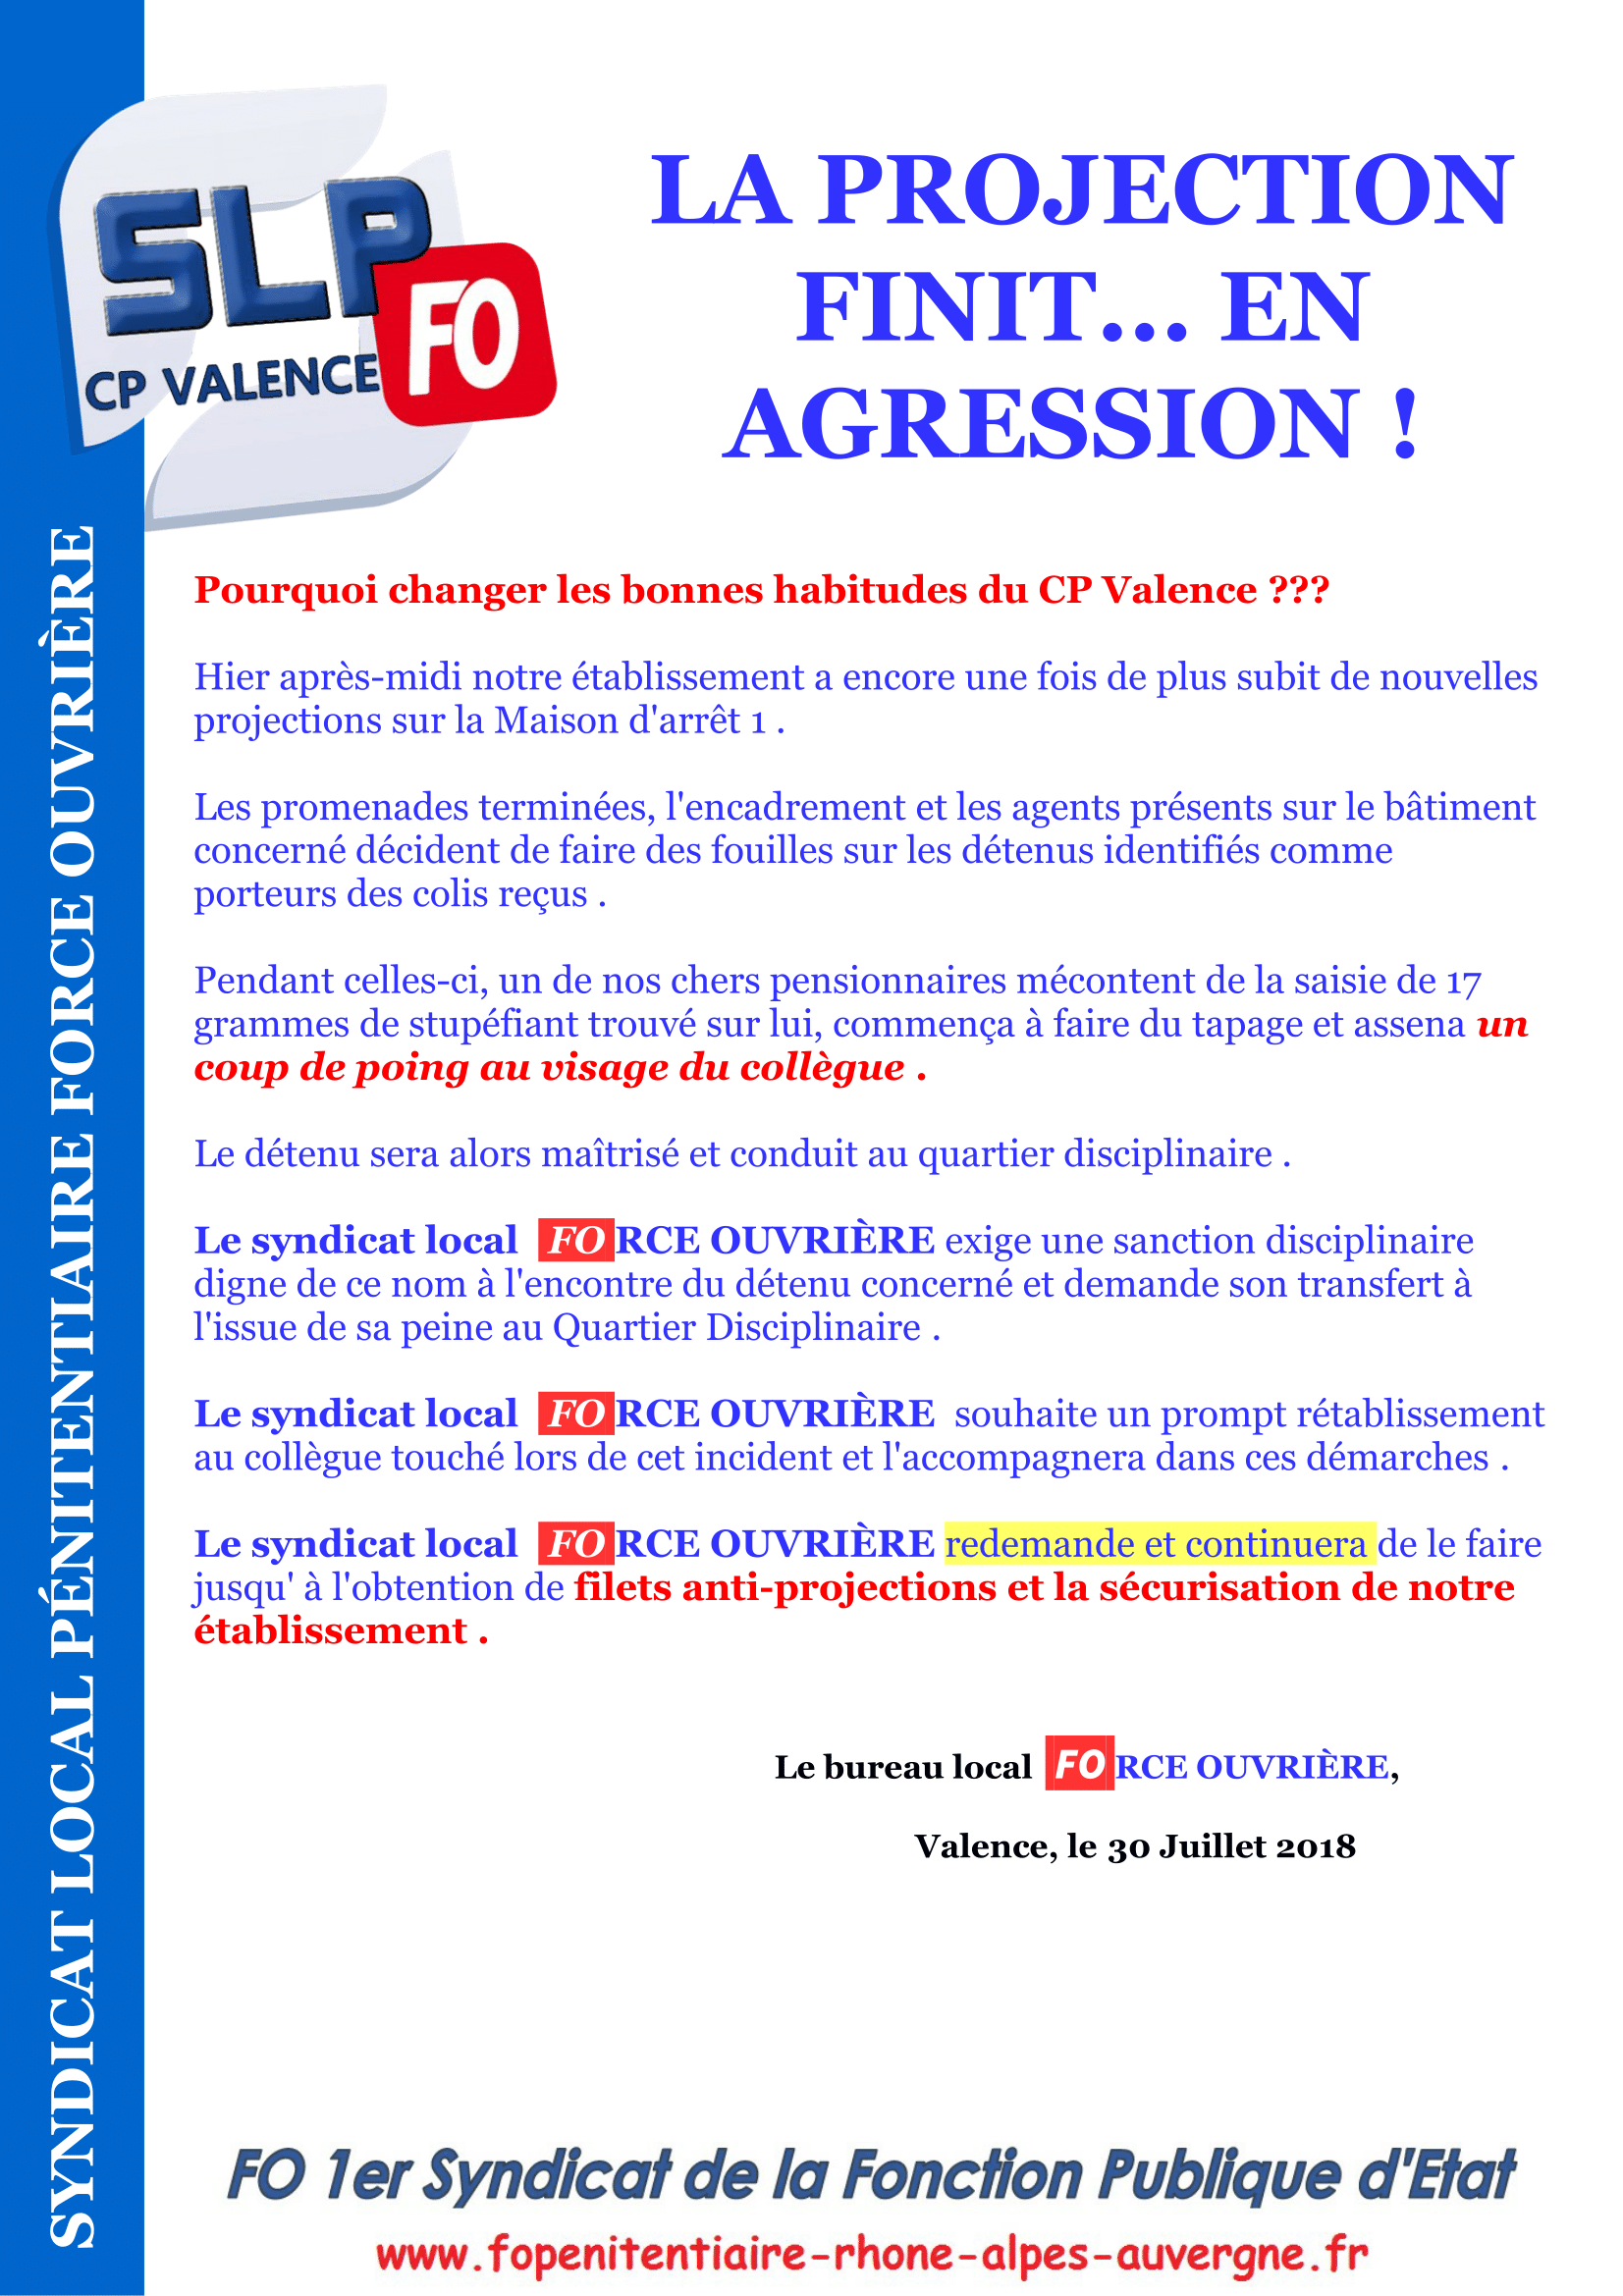 CP Valence - projection agression-1